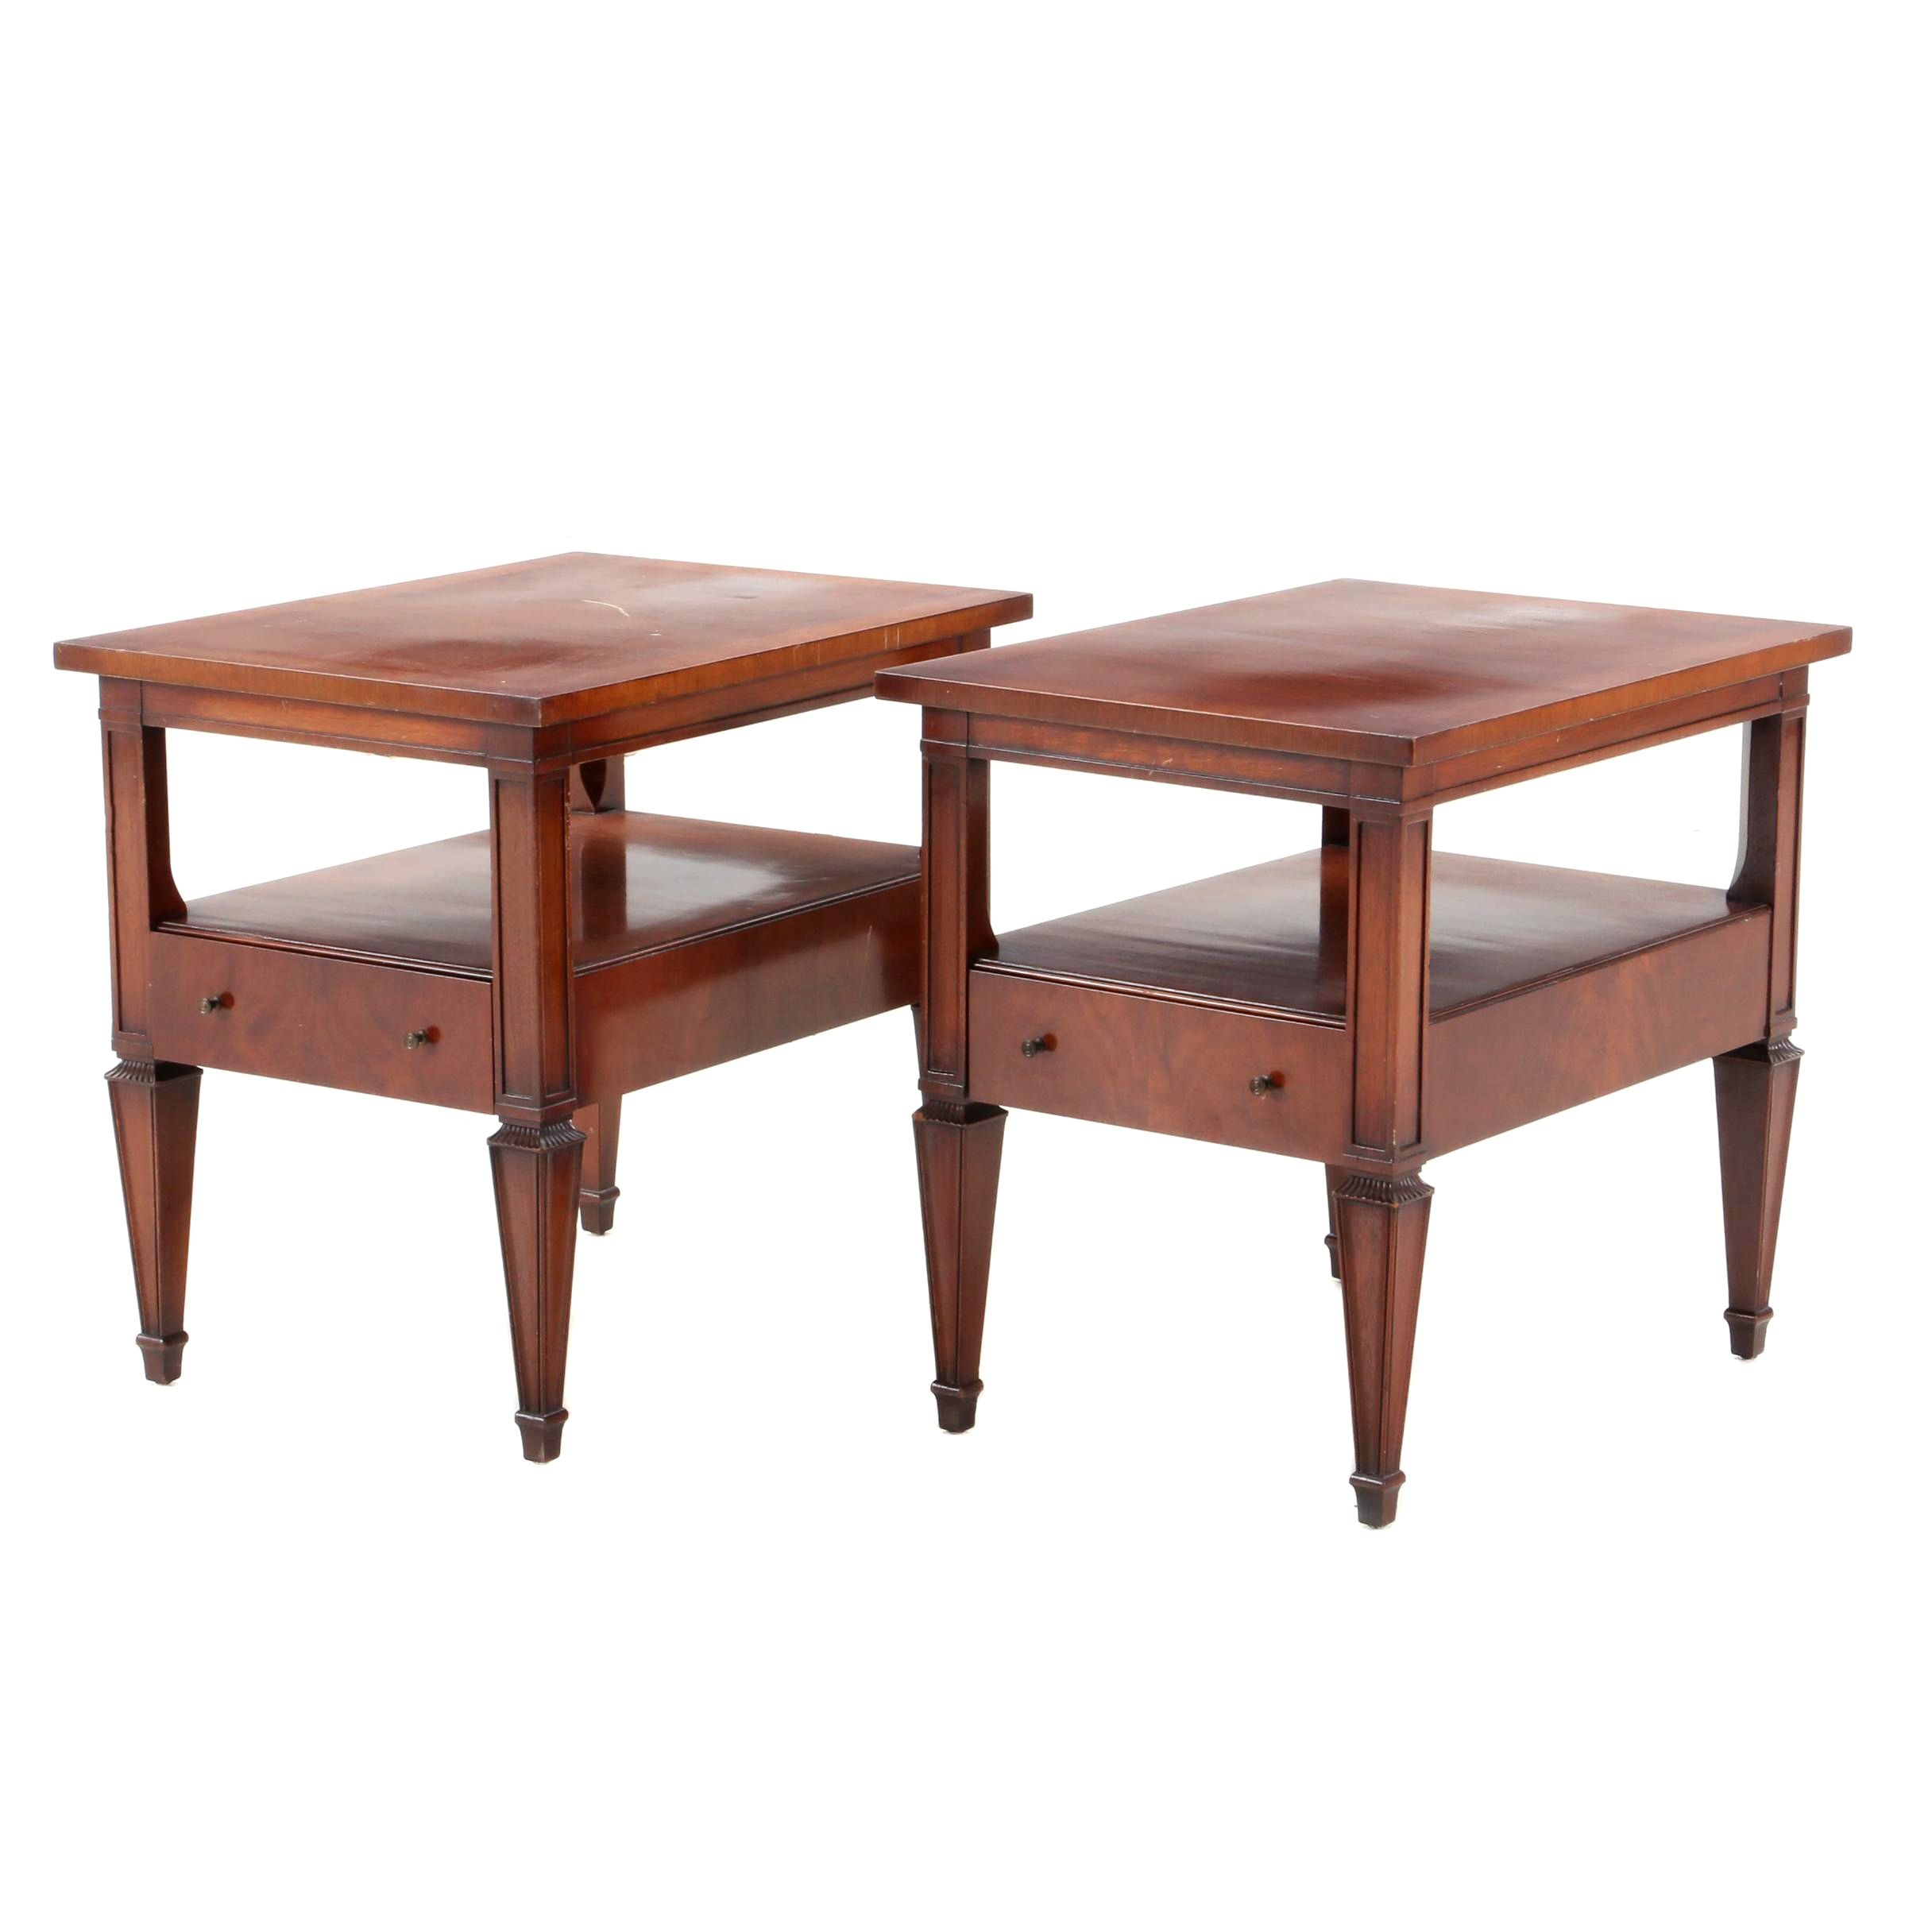 Mid-Century Mahogany End Tables by WM. A. Berkey Furniture, Mid 20th Century